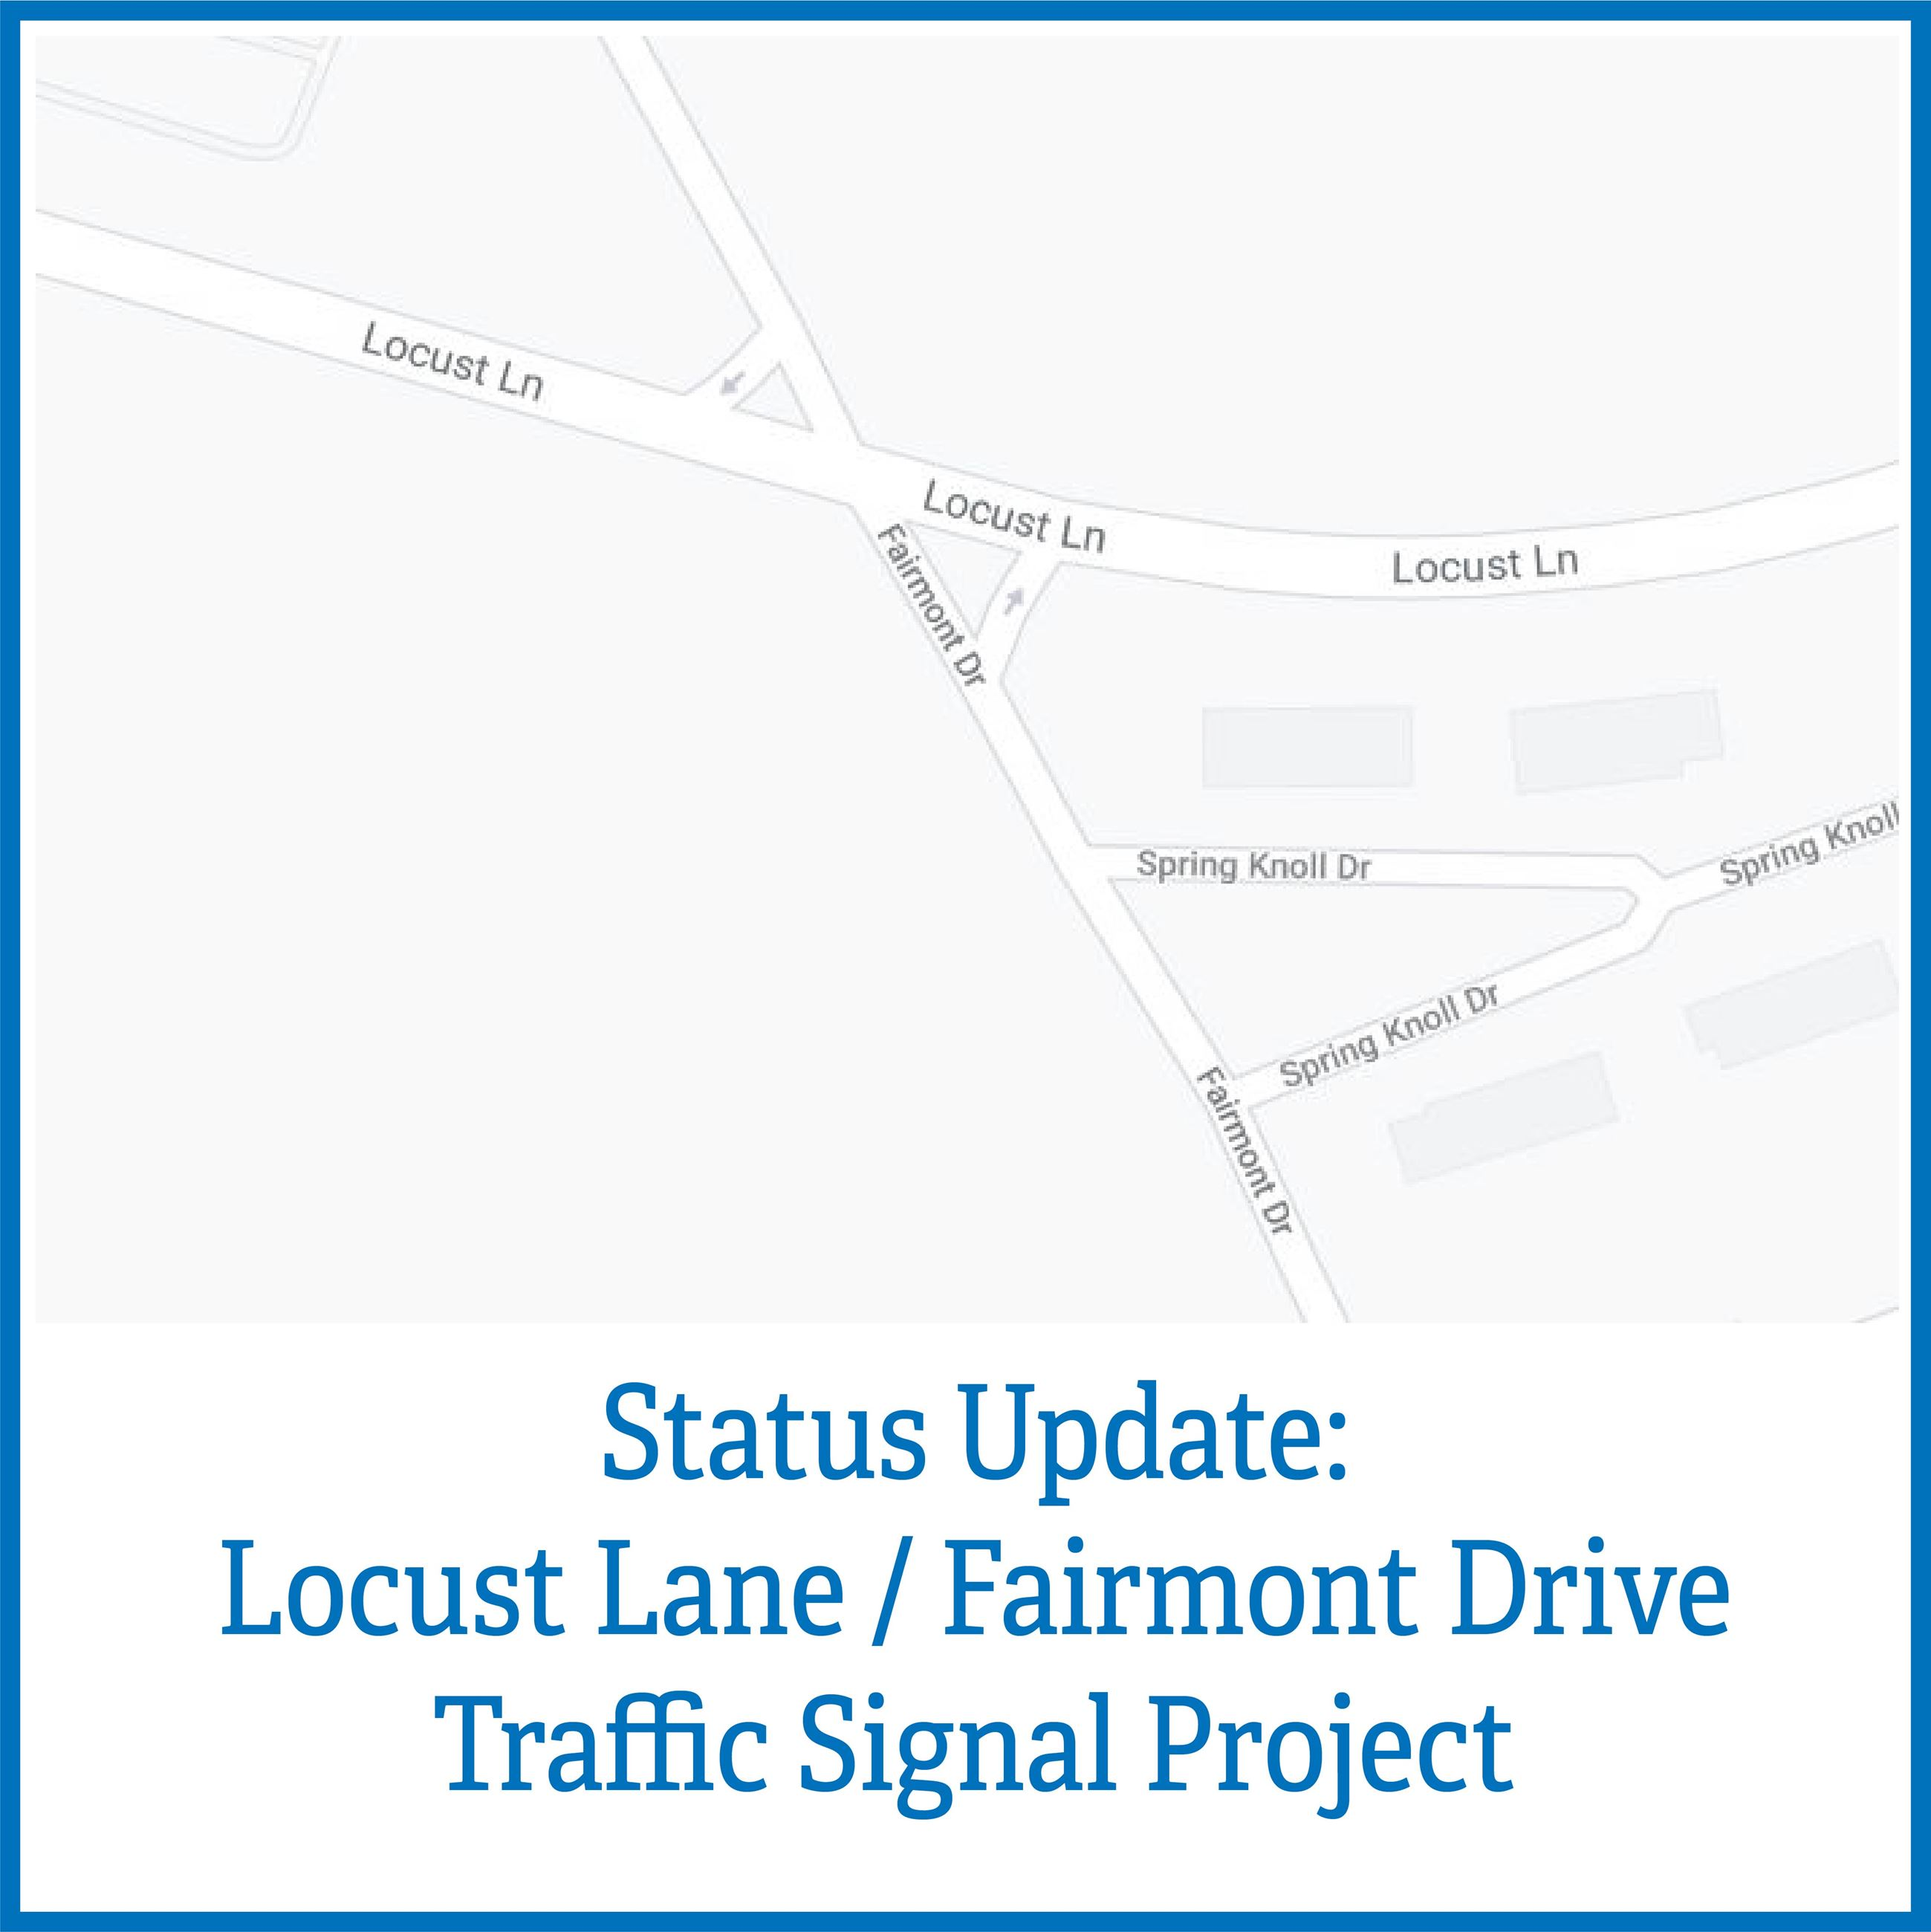 Image for Status Update Locust Lane Fairmont Drive Traffic Signal Project